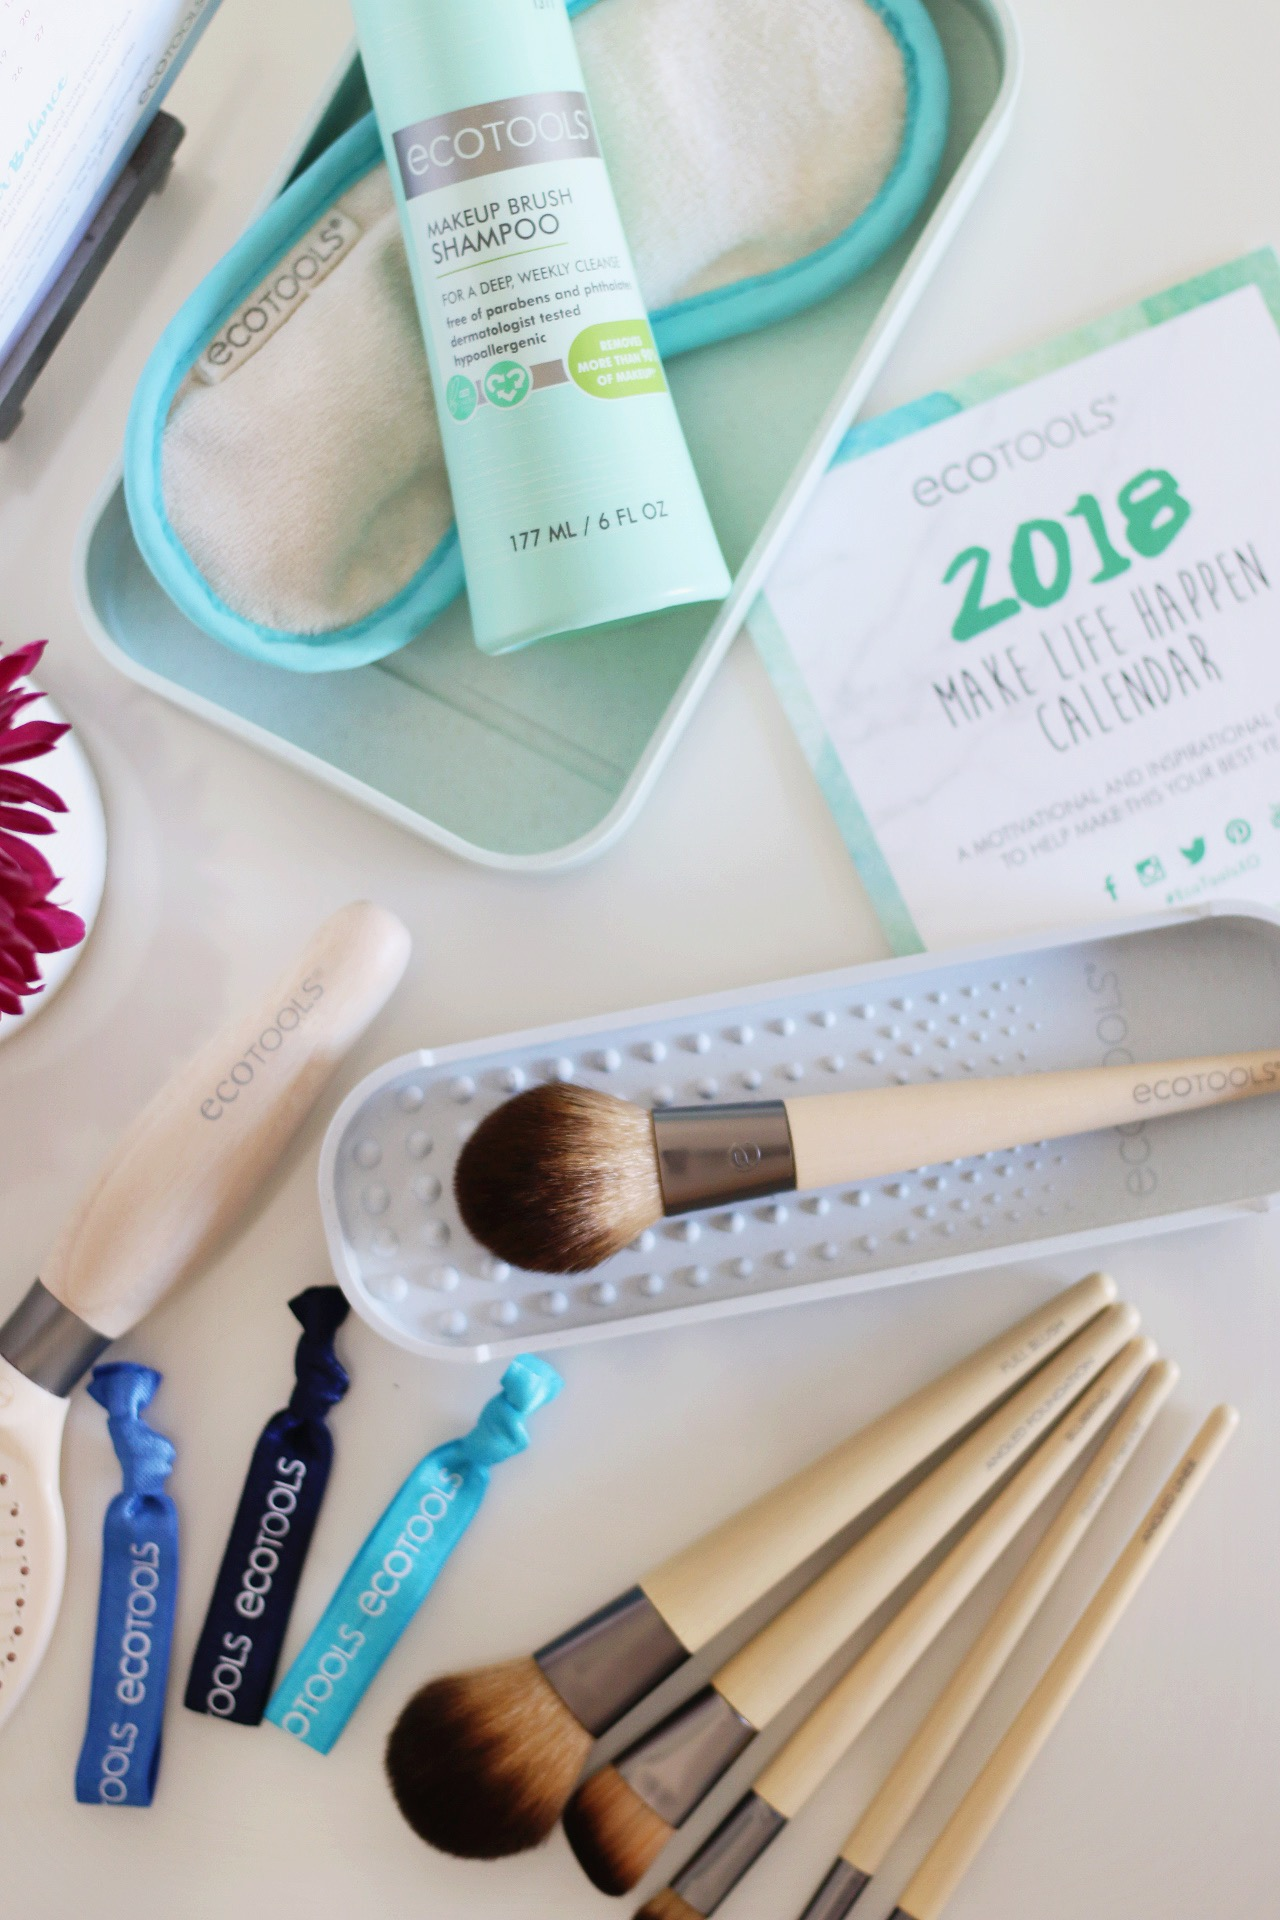 Making life happen in 2018 with Ecotools, Making life happen in 2018 with Ecotools